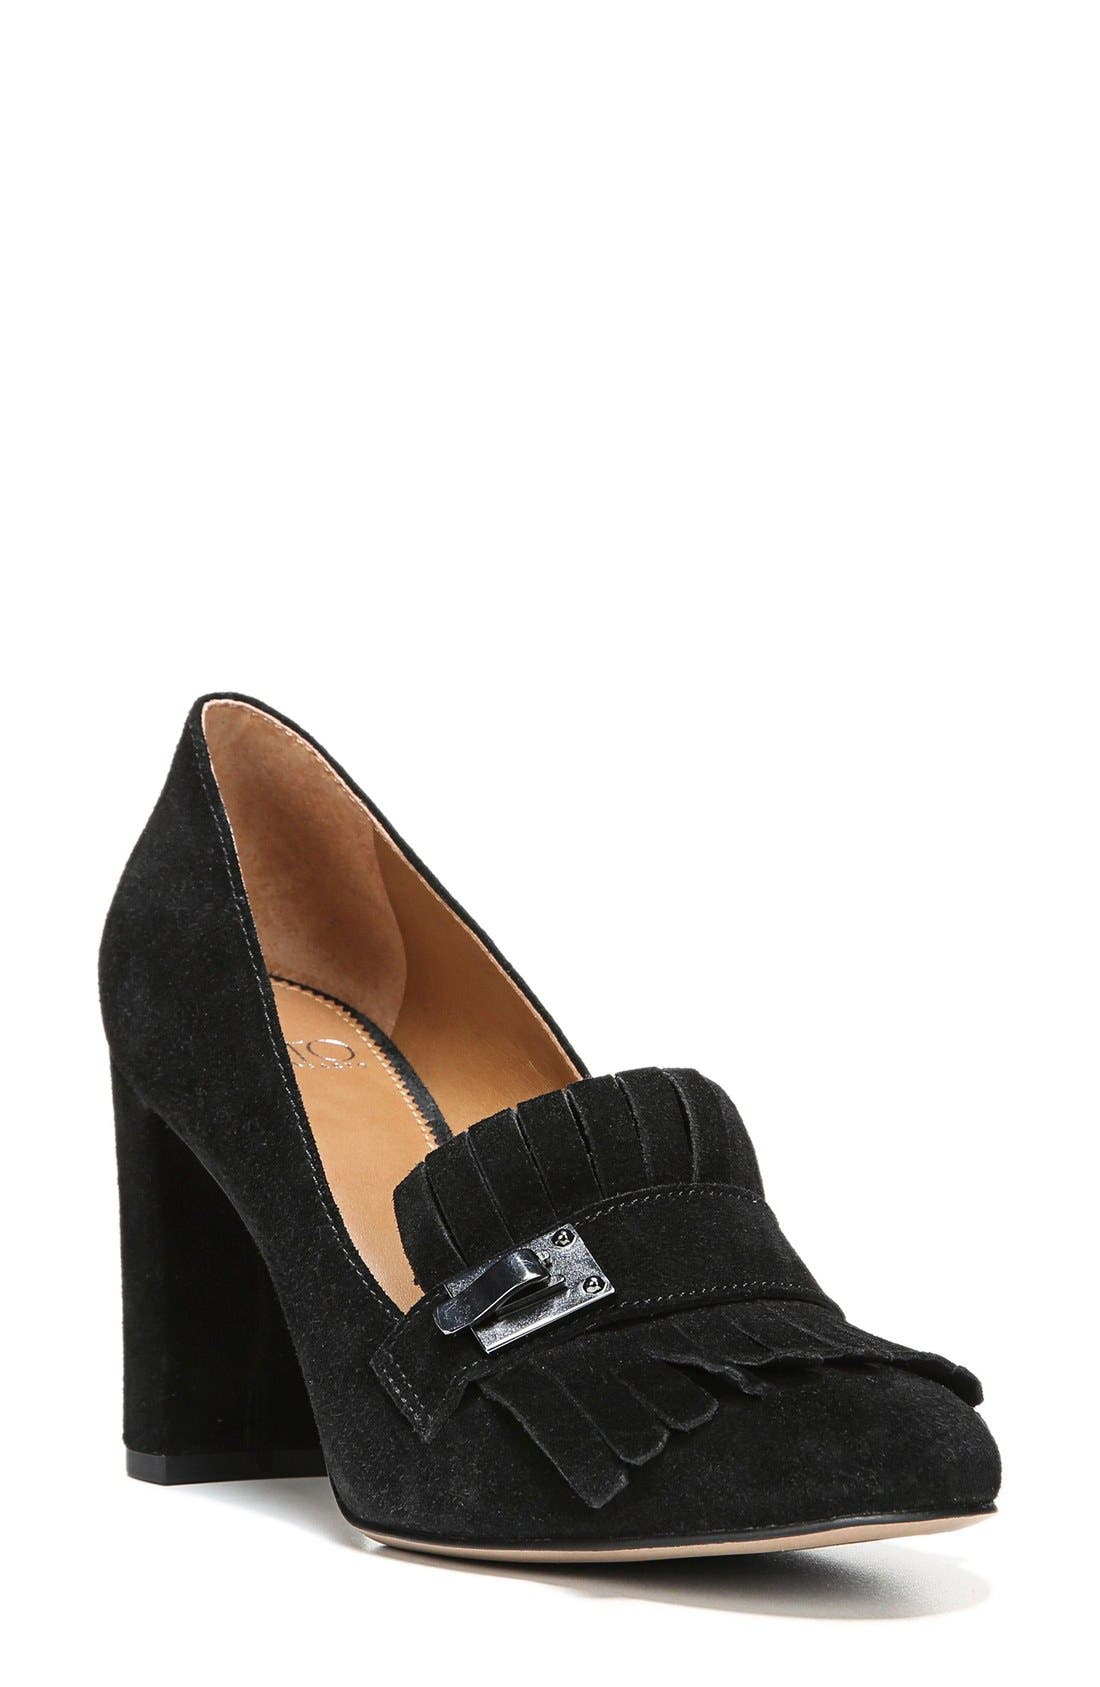 'Ainsley' Loafer Pump,                             Main thumbnail 1, color,                             001